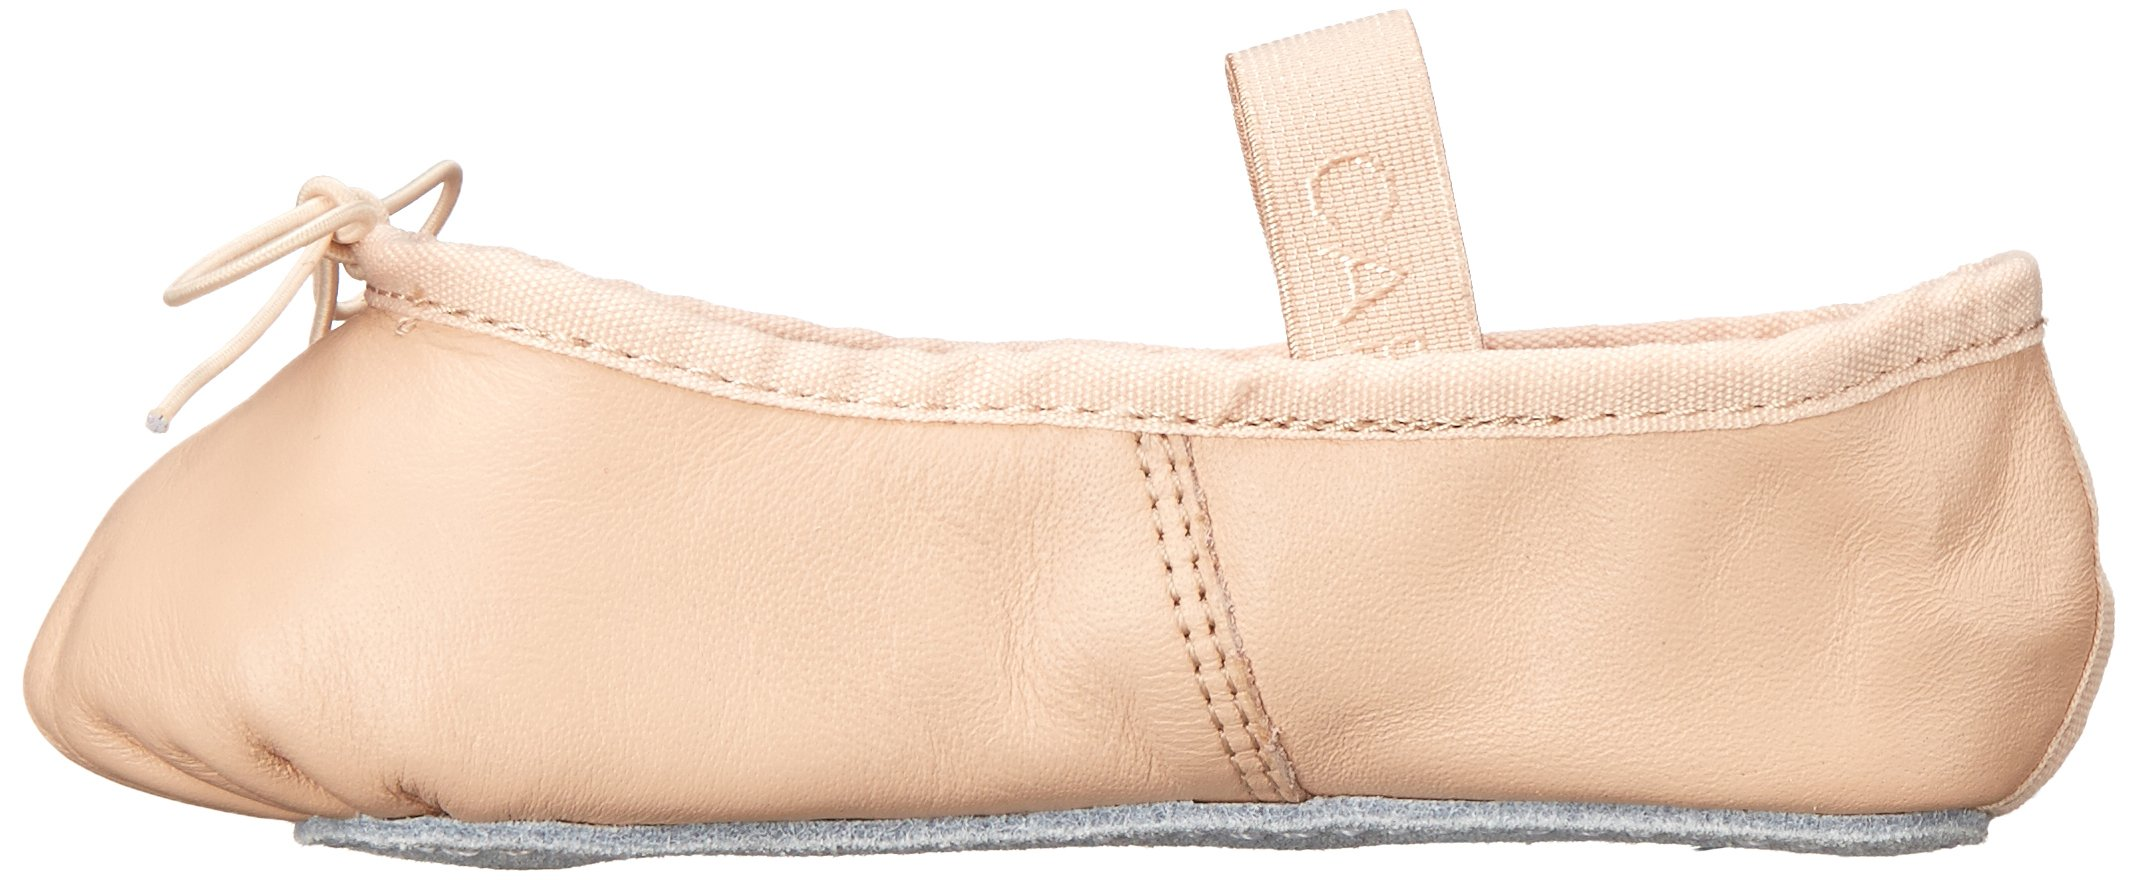 Capezio Daisy 205 Ballet Shoe (Toddler/Little Kid),Ballet Pink,8 M US Toddler by Capezio (Image #5)